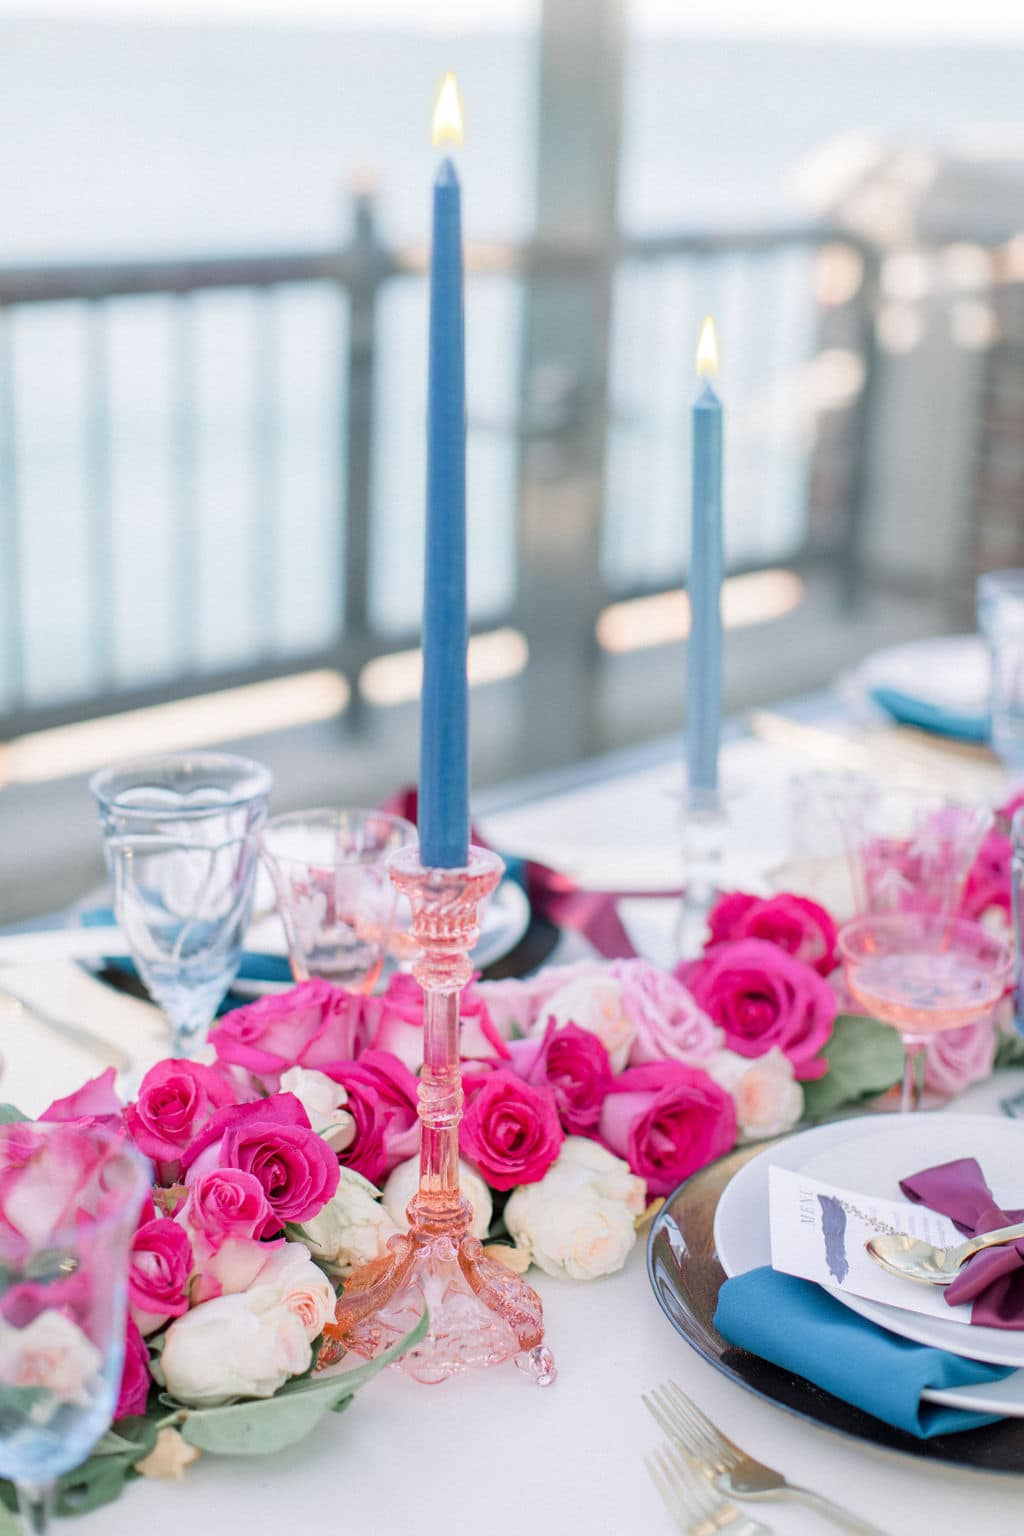 blue and pink glassware at table with pink roses